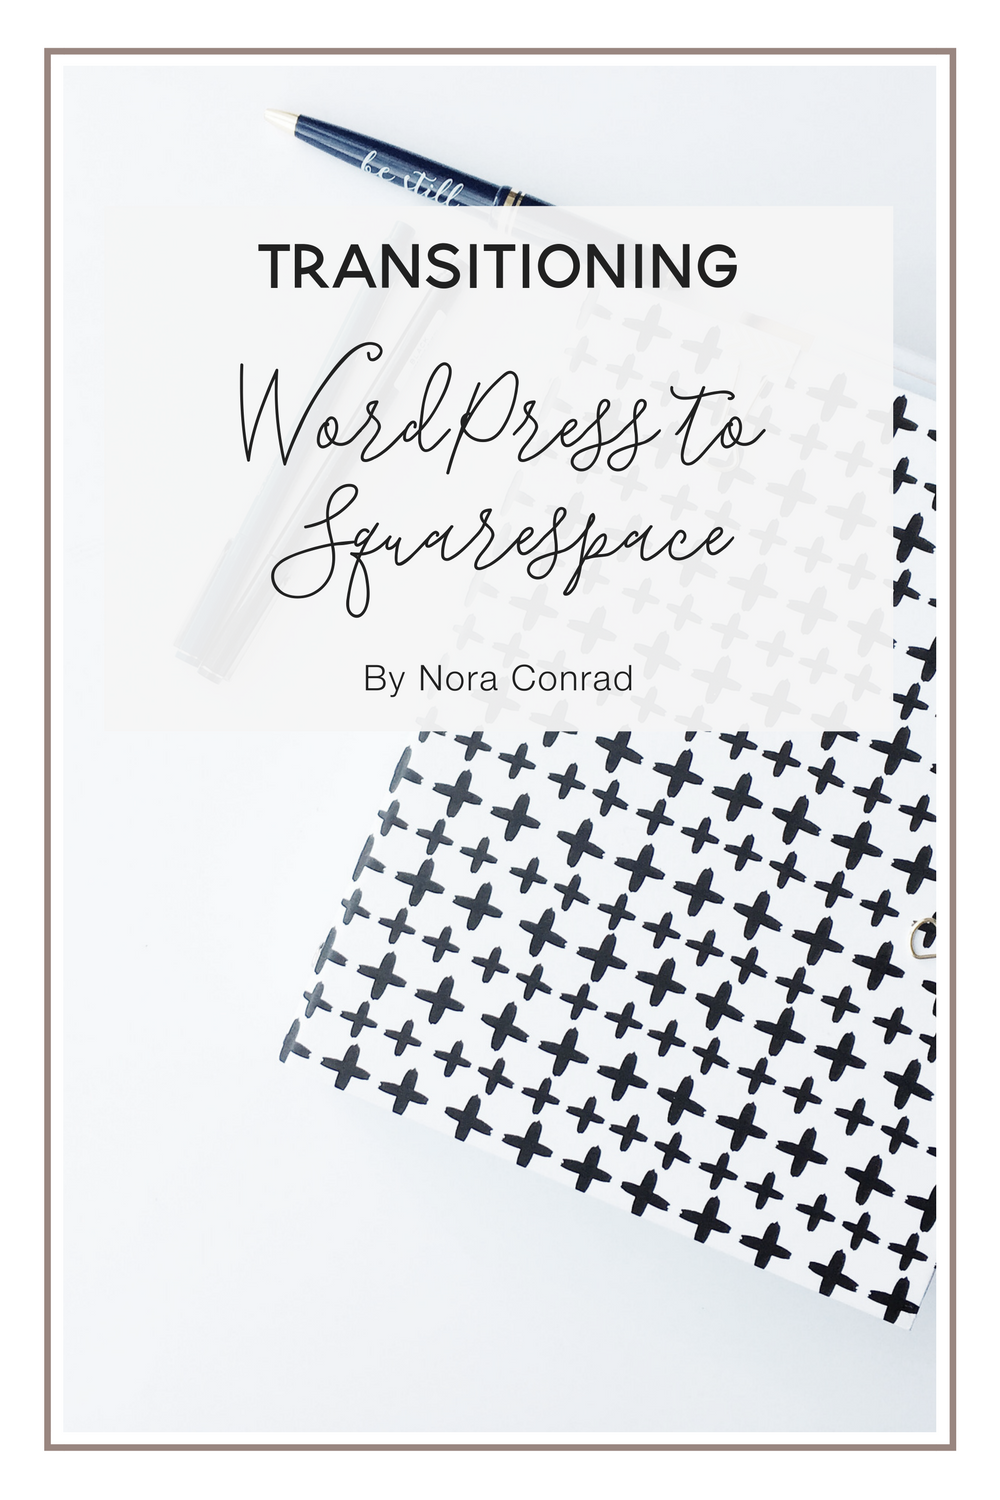 I've had my blog on WordPress for over 5 years, but this morning I made the switch to Squarespace & I want to share why! There's also some updates and goodies coming to the blog this month that are worth marking your calendars for.